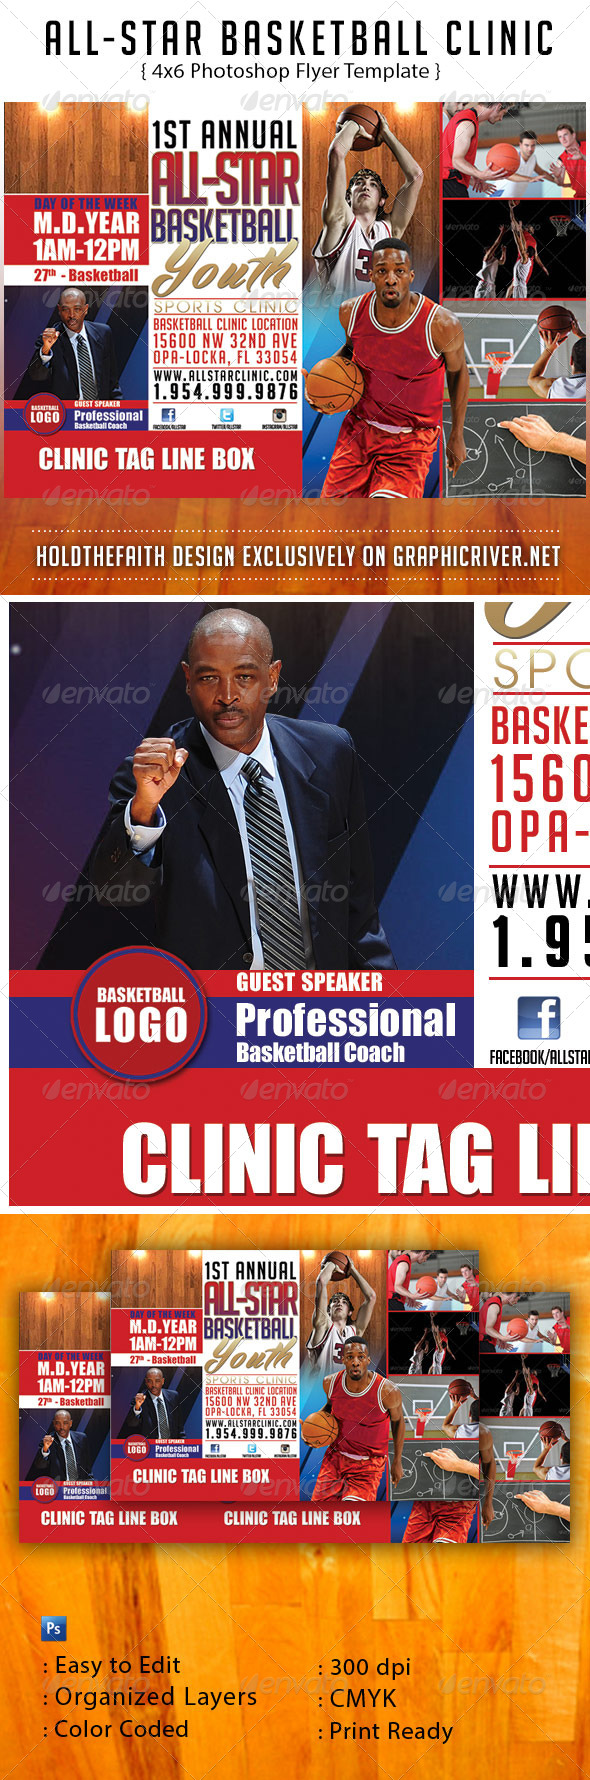 GraphicRiver All-Star Basketball Clinic 6340781